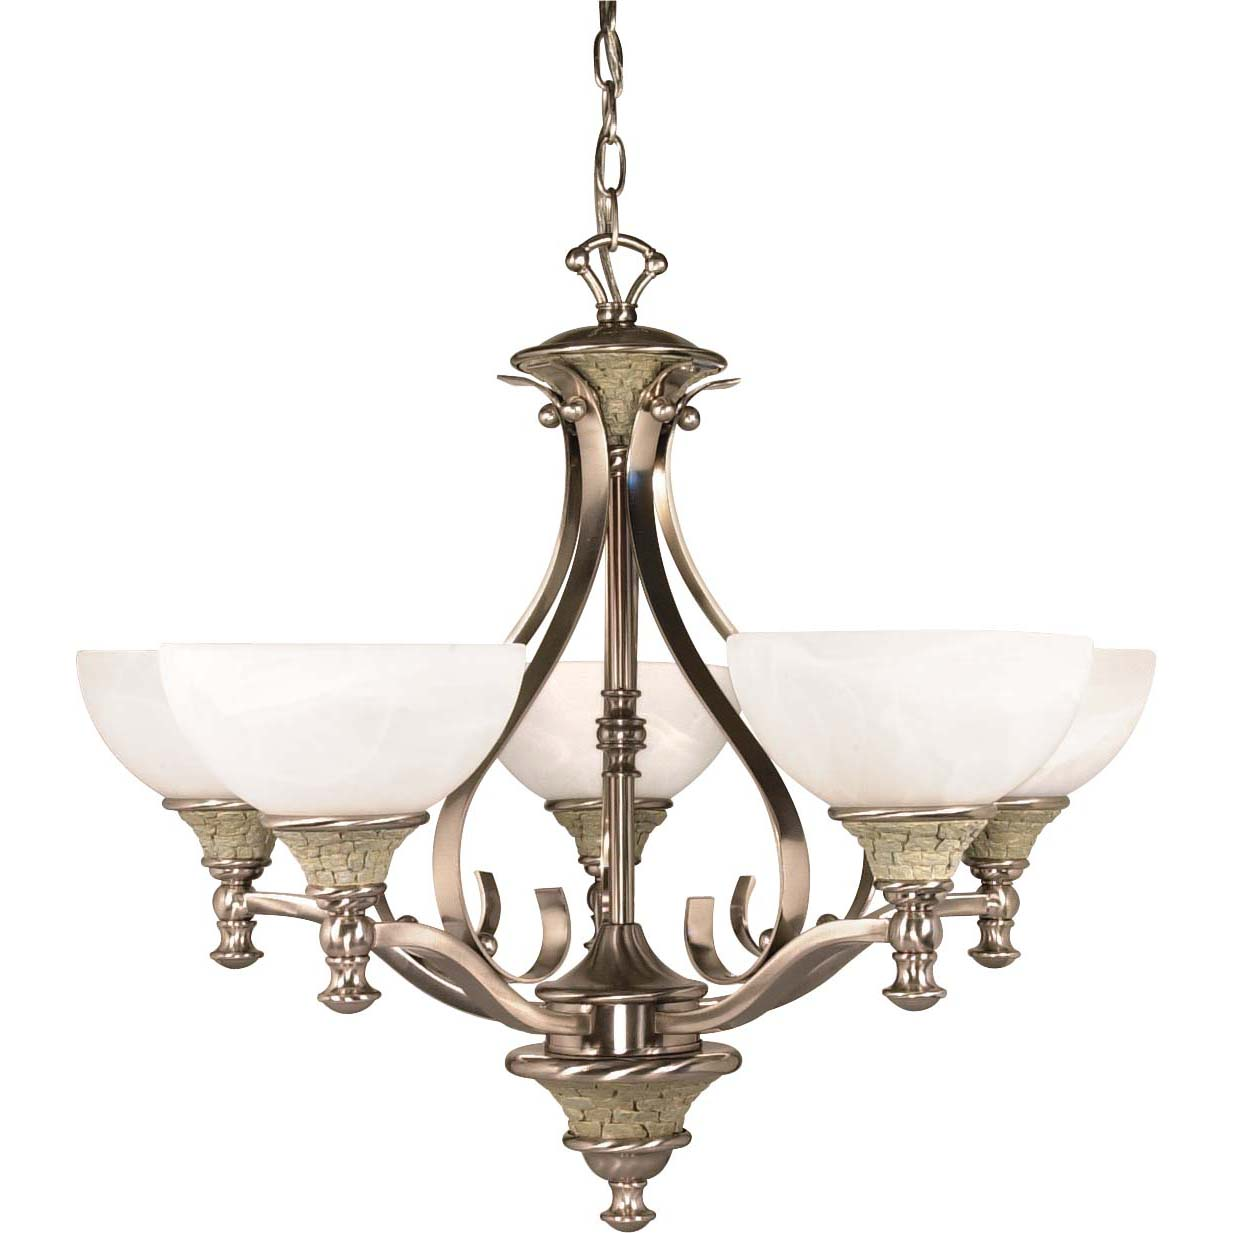 Rockport Milano Alabaster Swirl Glass Brushed Nickel 5-light Chandelier